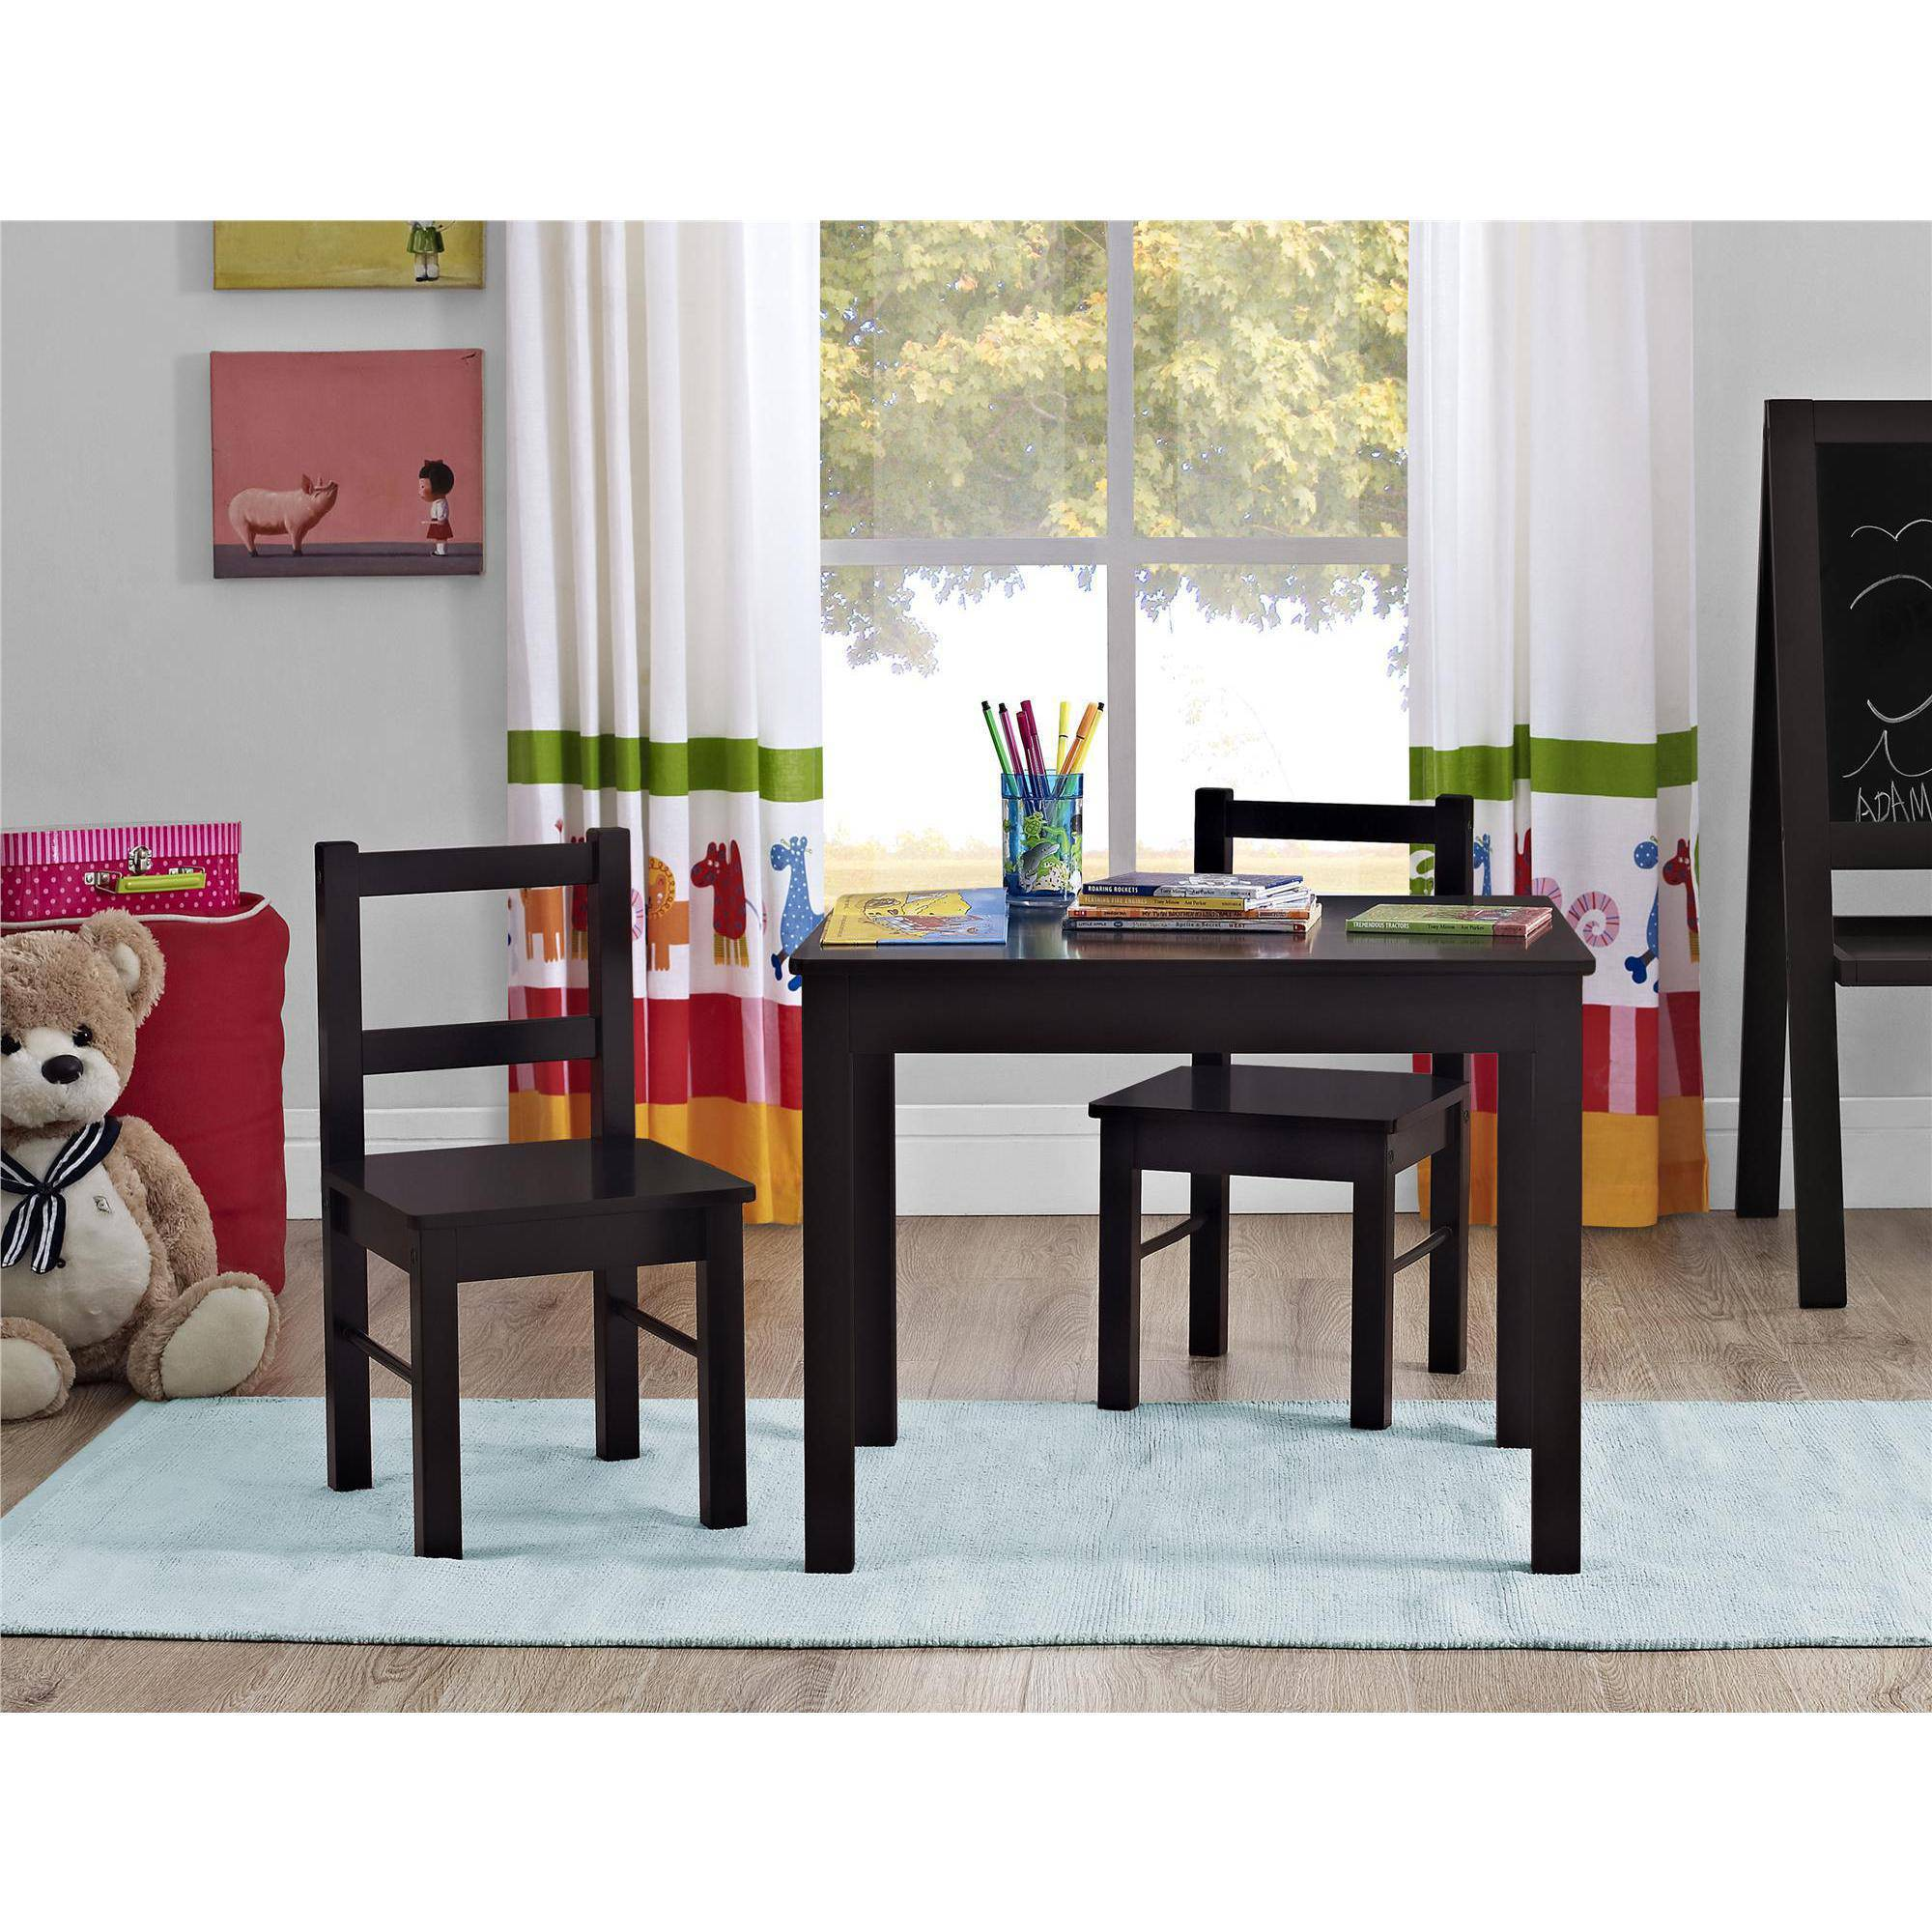 Altra Furniture Hazel Kids Table and Chairs 3-Piece Set, Espresso